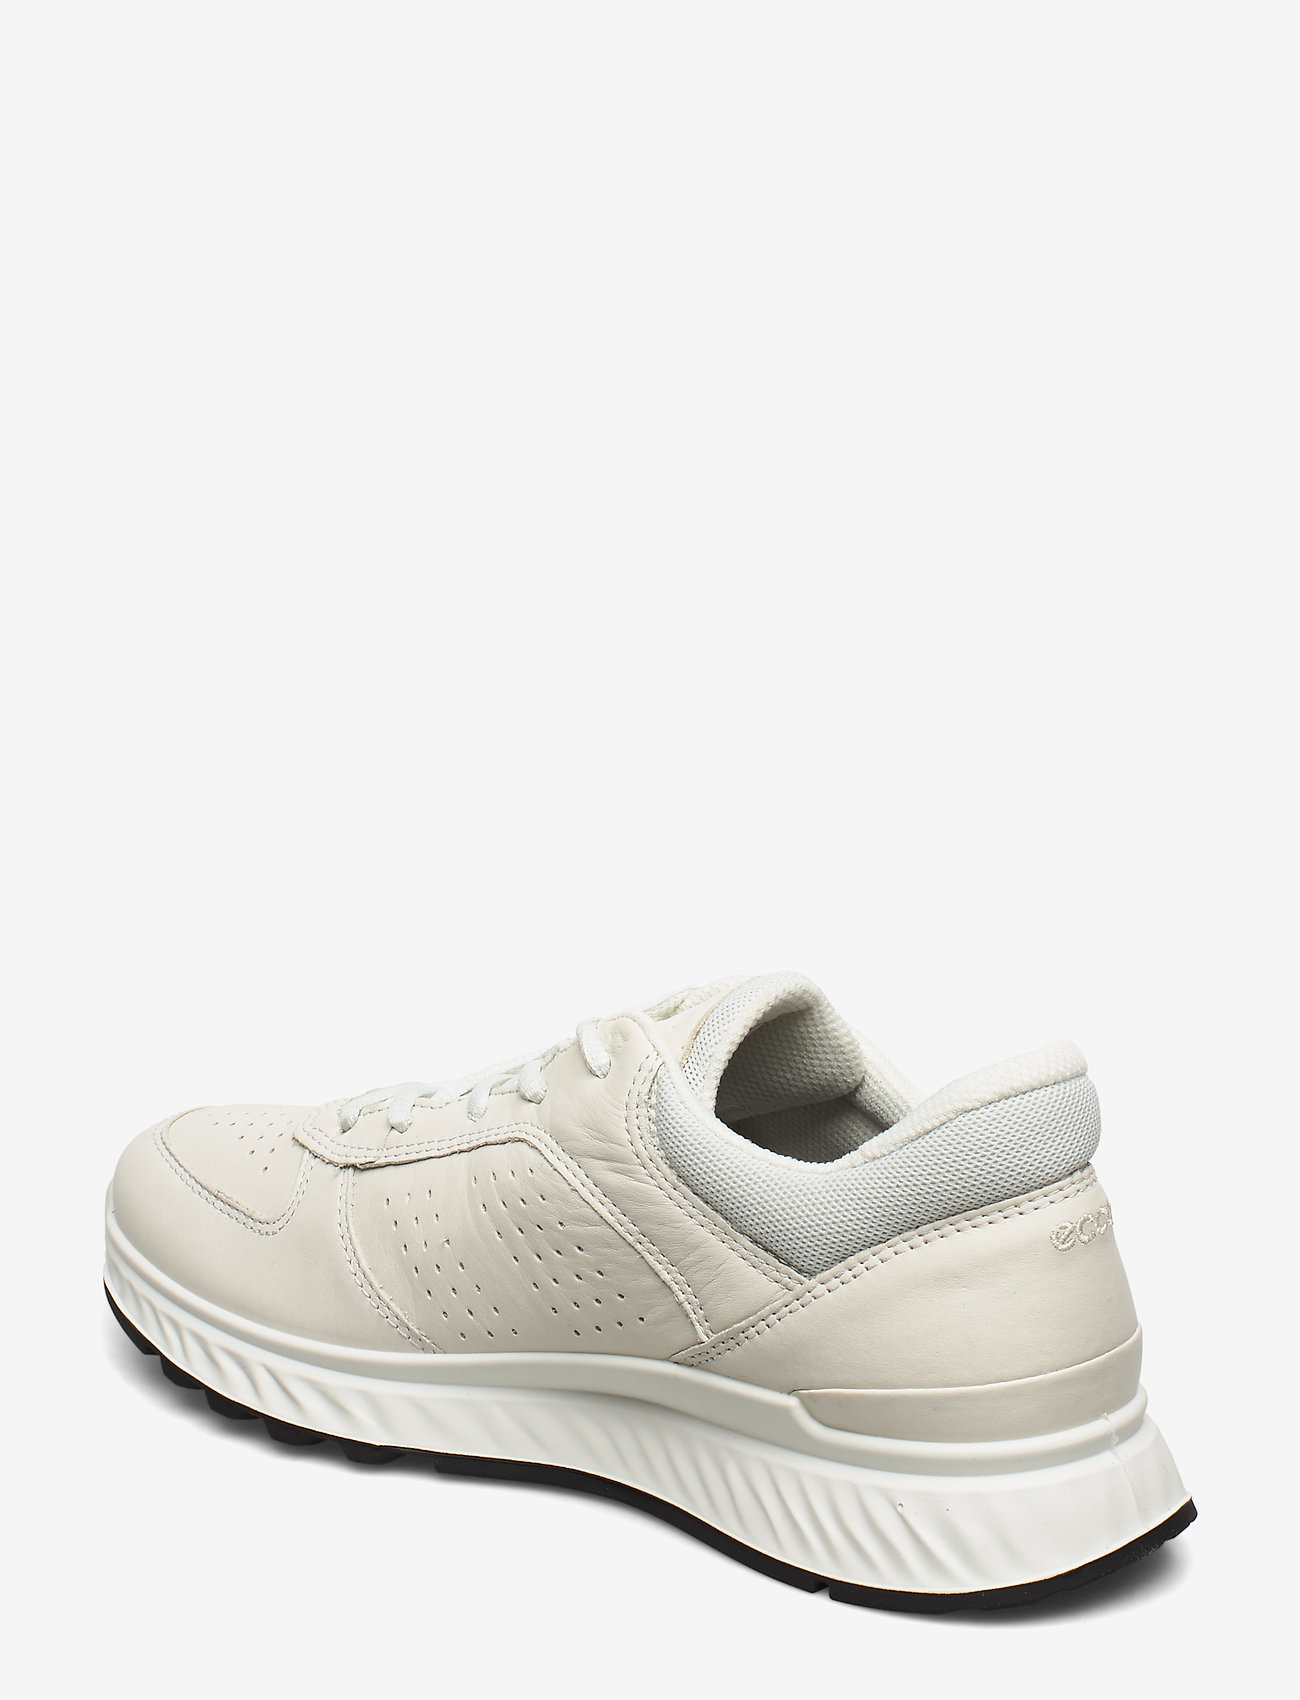 Exostride W (Shadow White) - ECCO